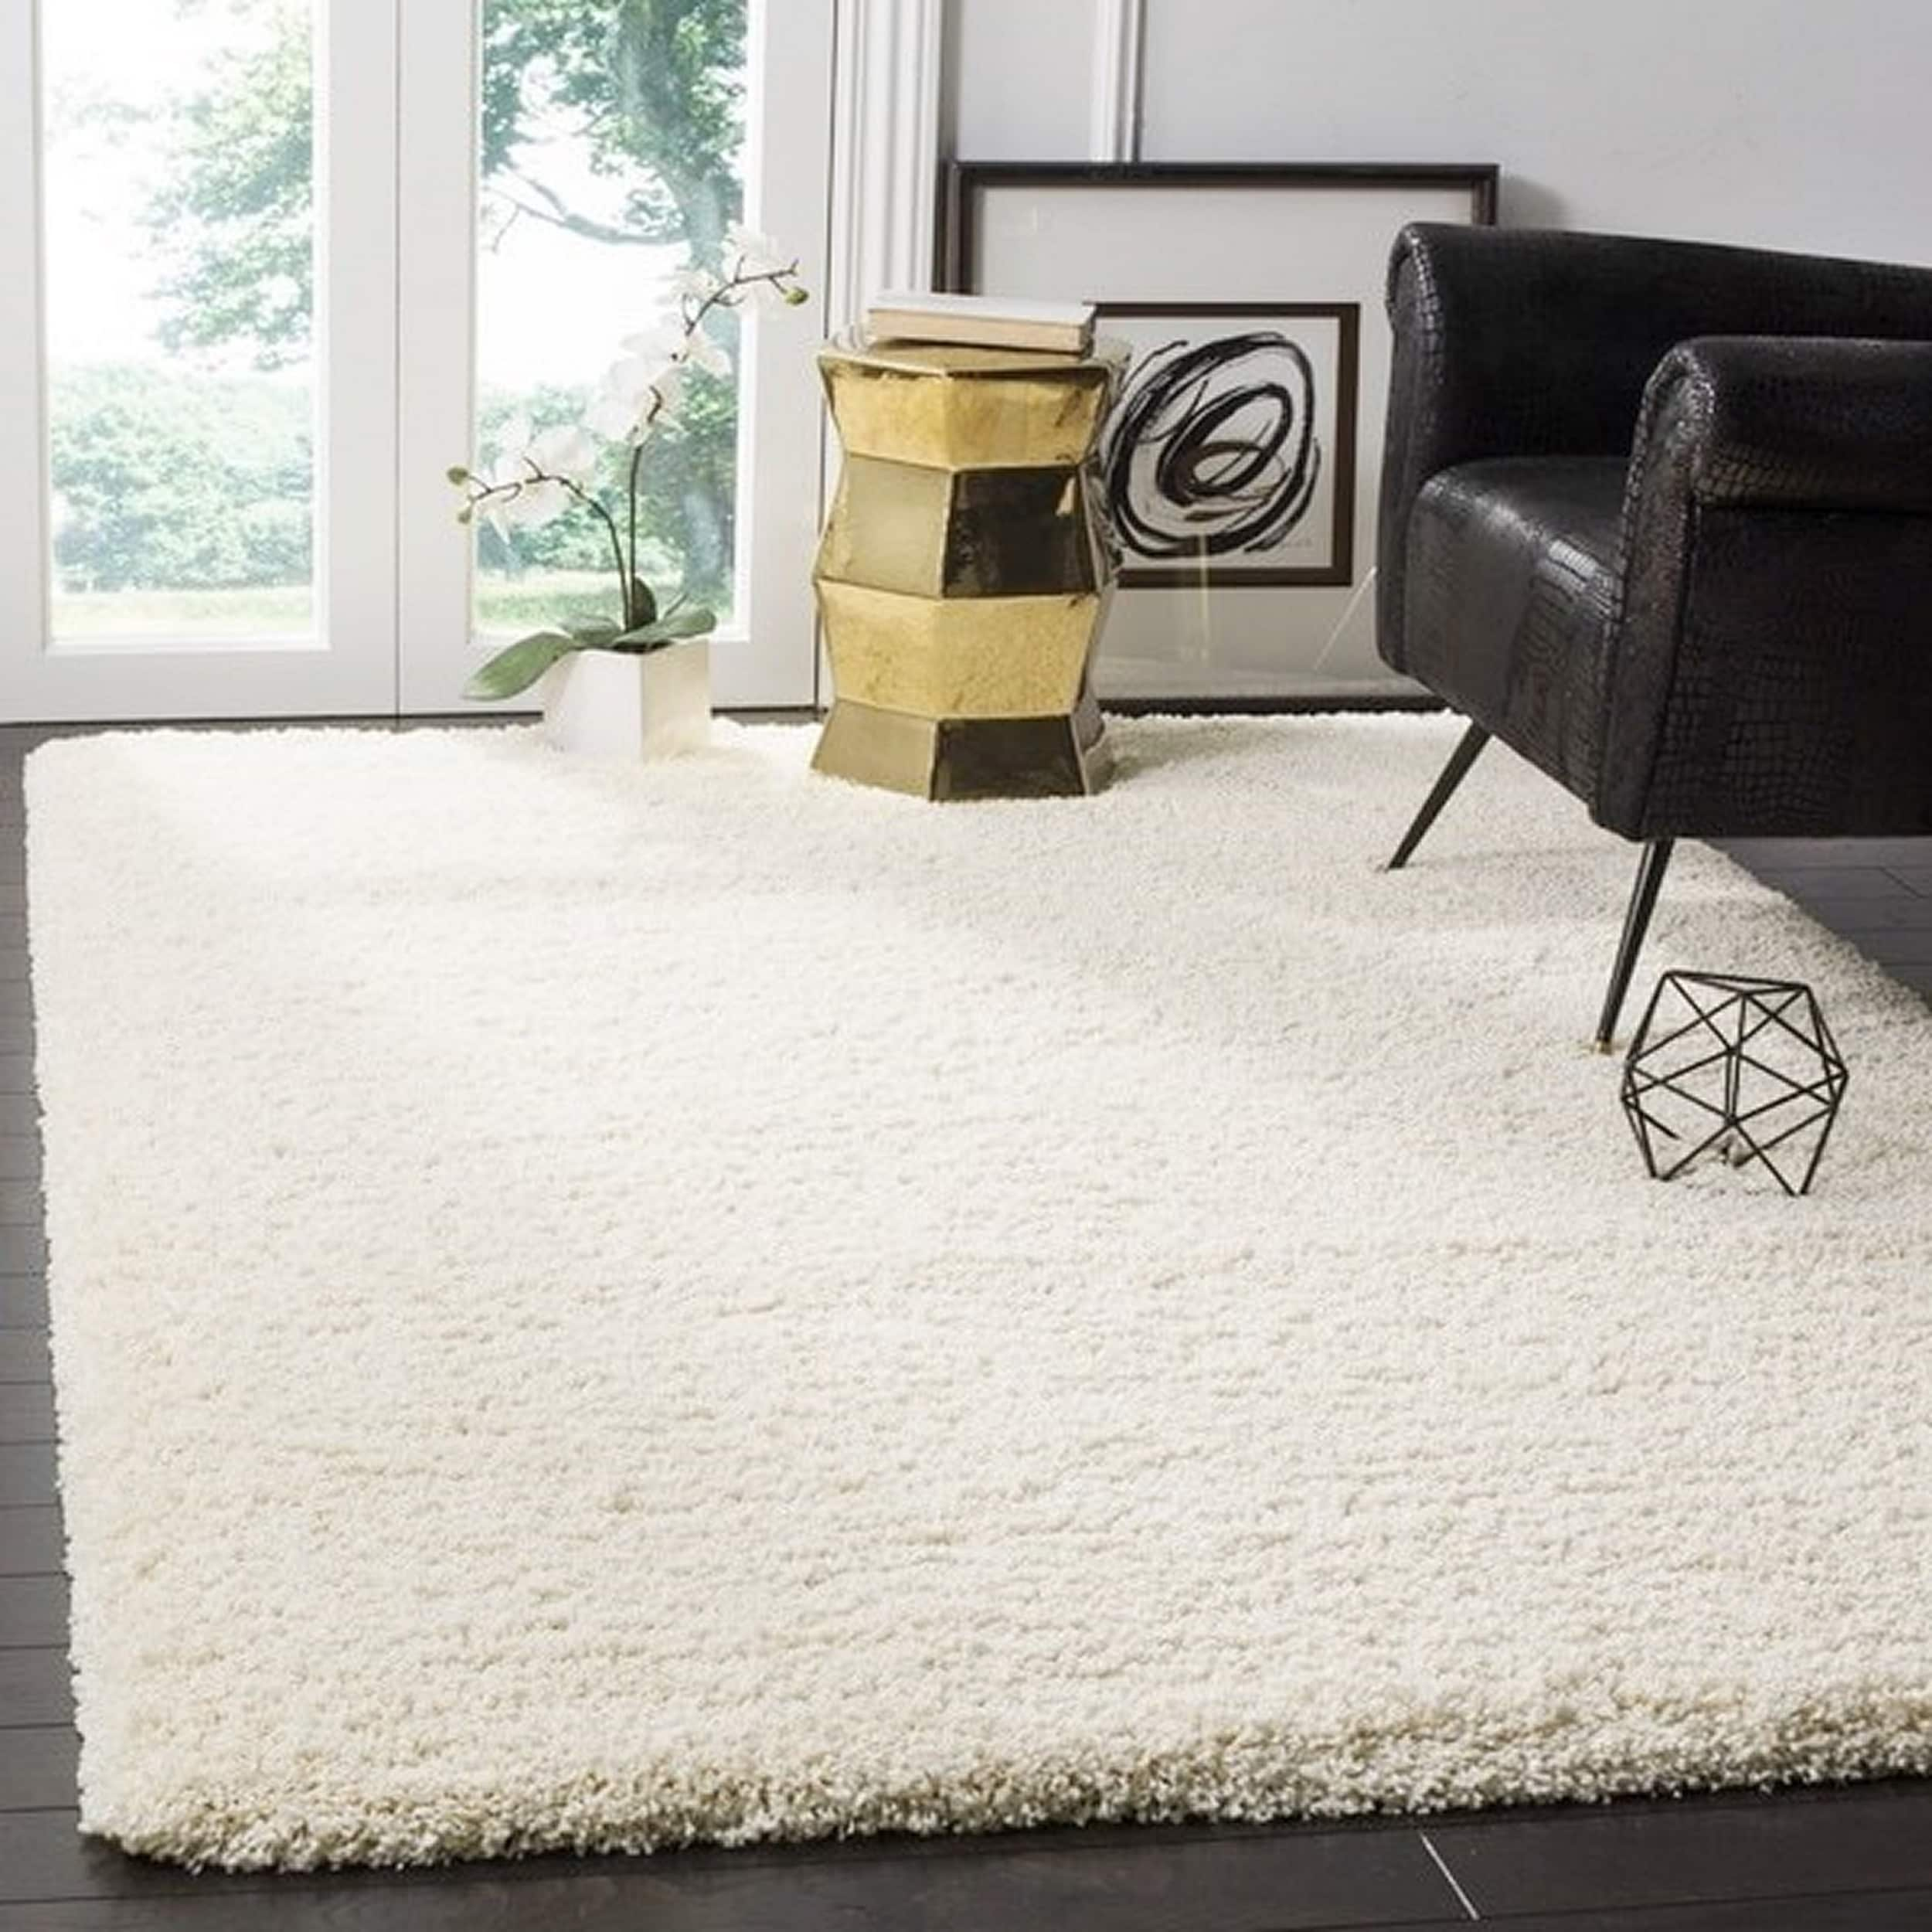 Safavieh California Cozy Plush Ivory Shag Rug (9'6 x 13') - Free Shipping  Today - Overstock.com - 14213421